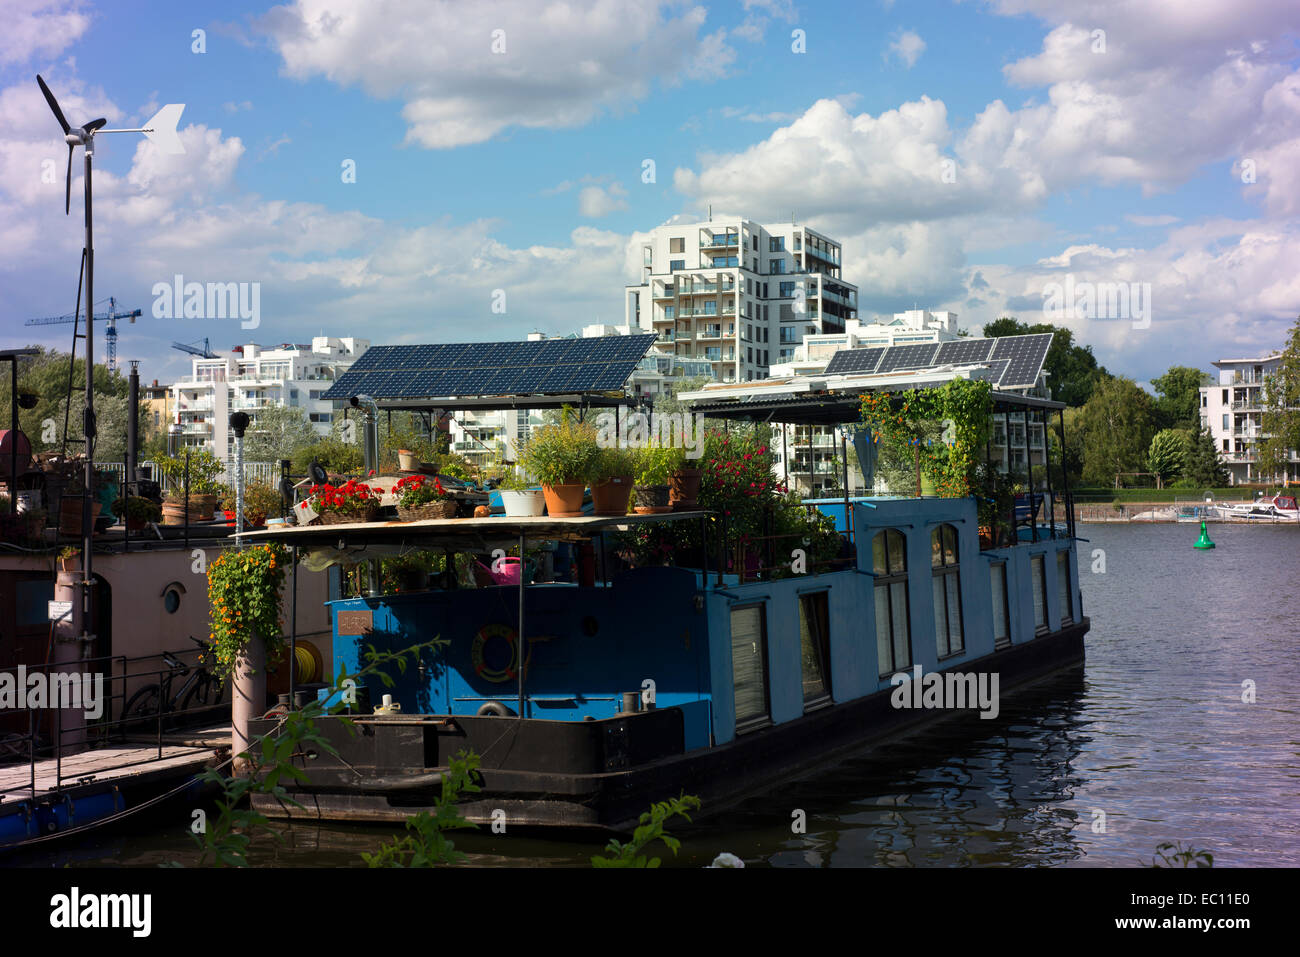 germany berlin barge on river stockfotos germany berlin barge on river bilder alamy. Black Bedroom Furniture Sets. Home Design Ideas